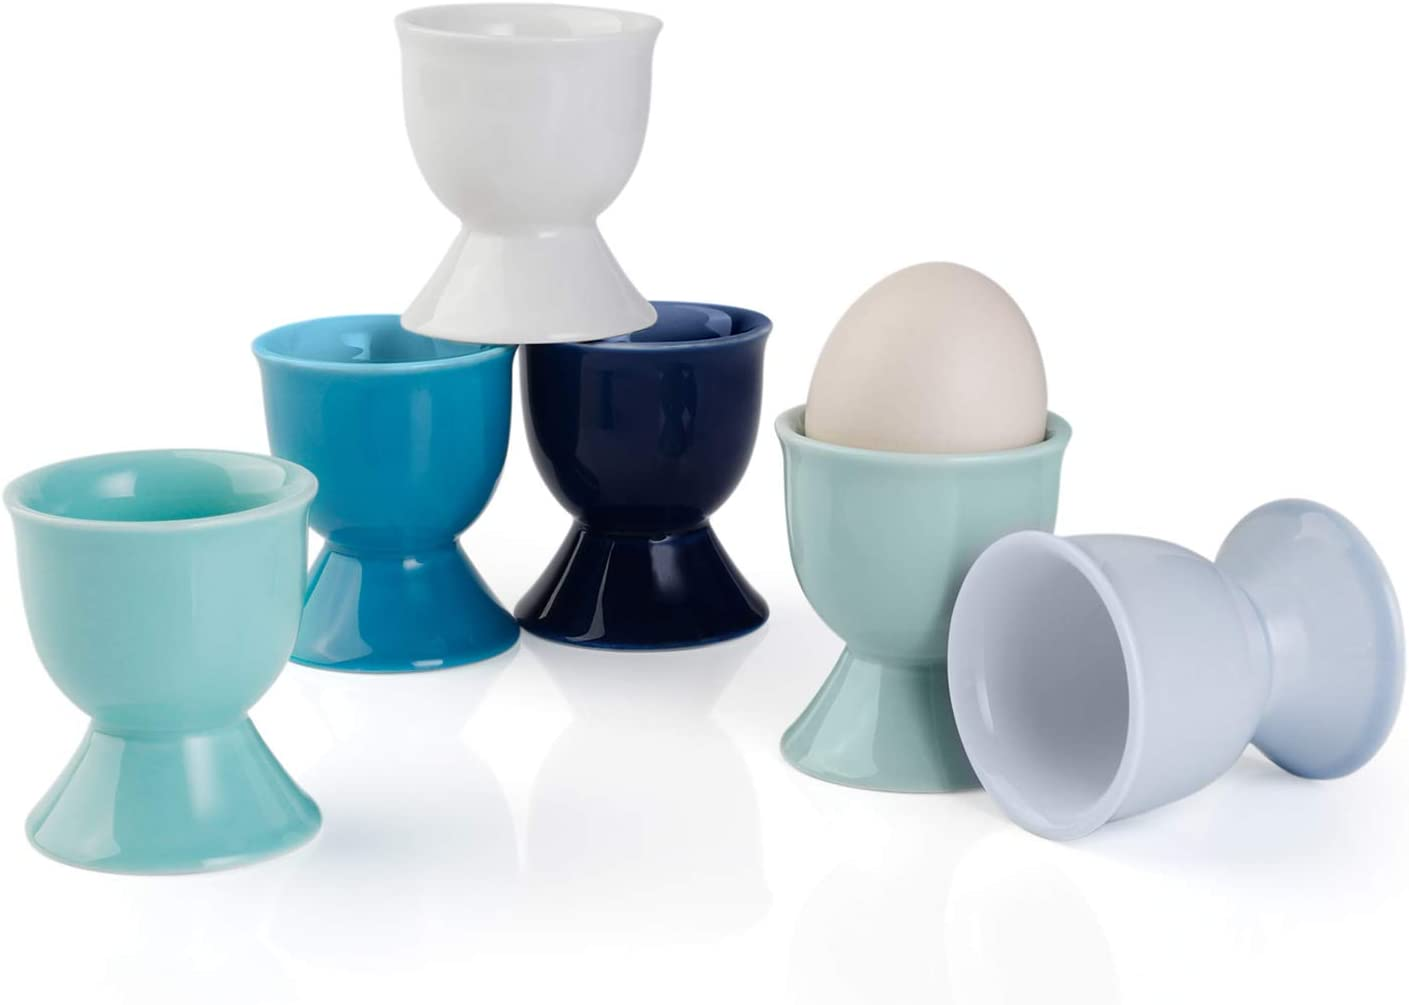 Sweese 805.003 Porcelain Egg Cups, Egg Holders for Hard Boiled Eggs - Set of 6, Cool Assorted Color